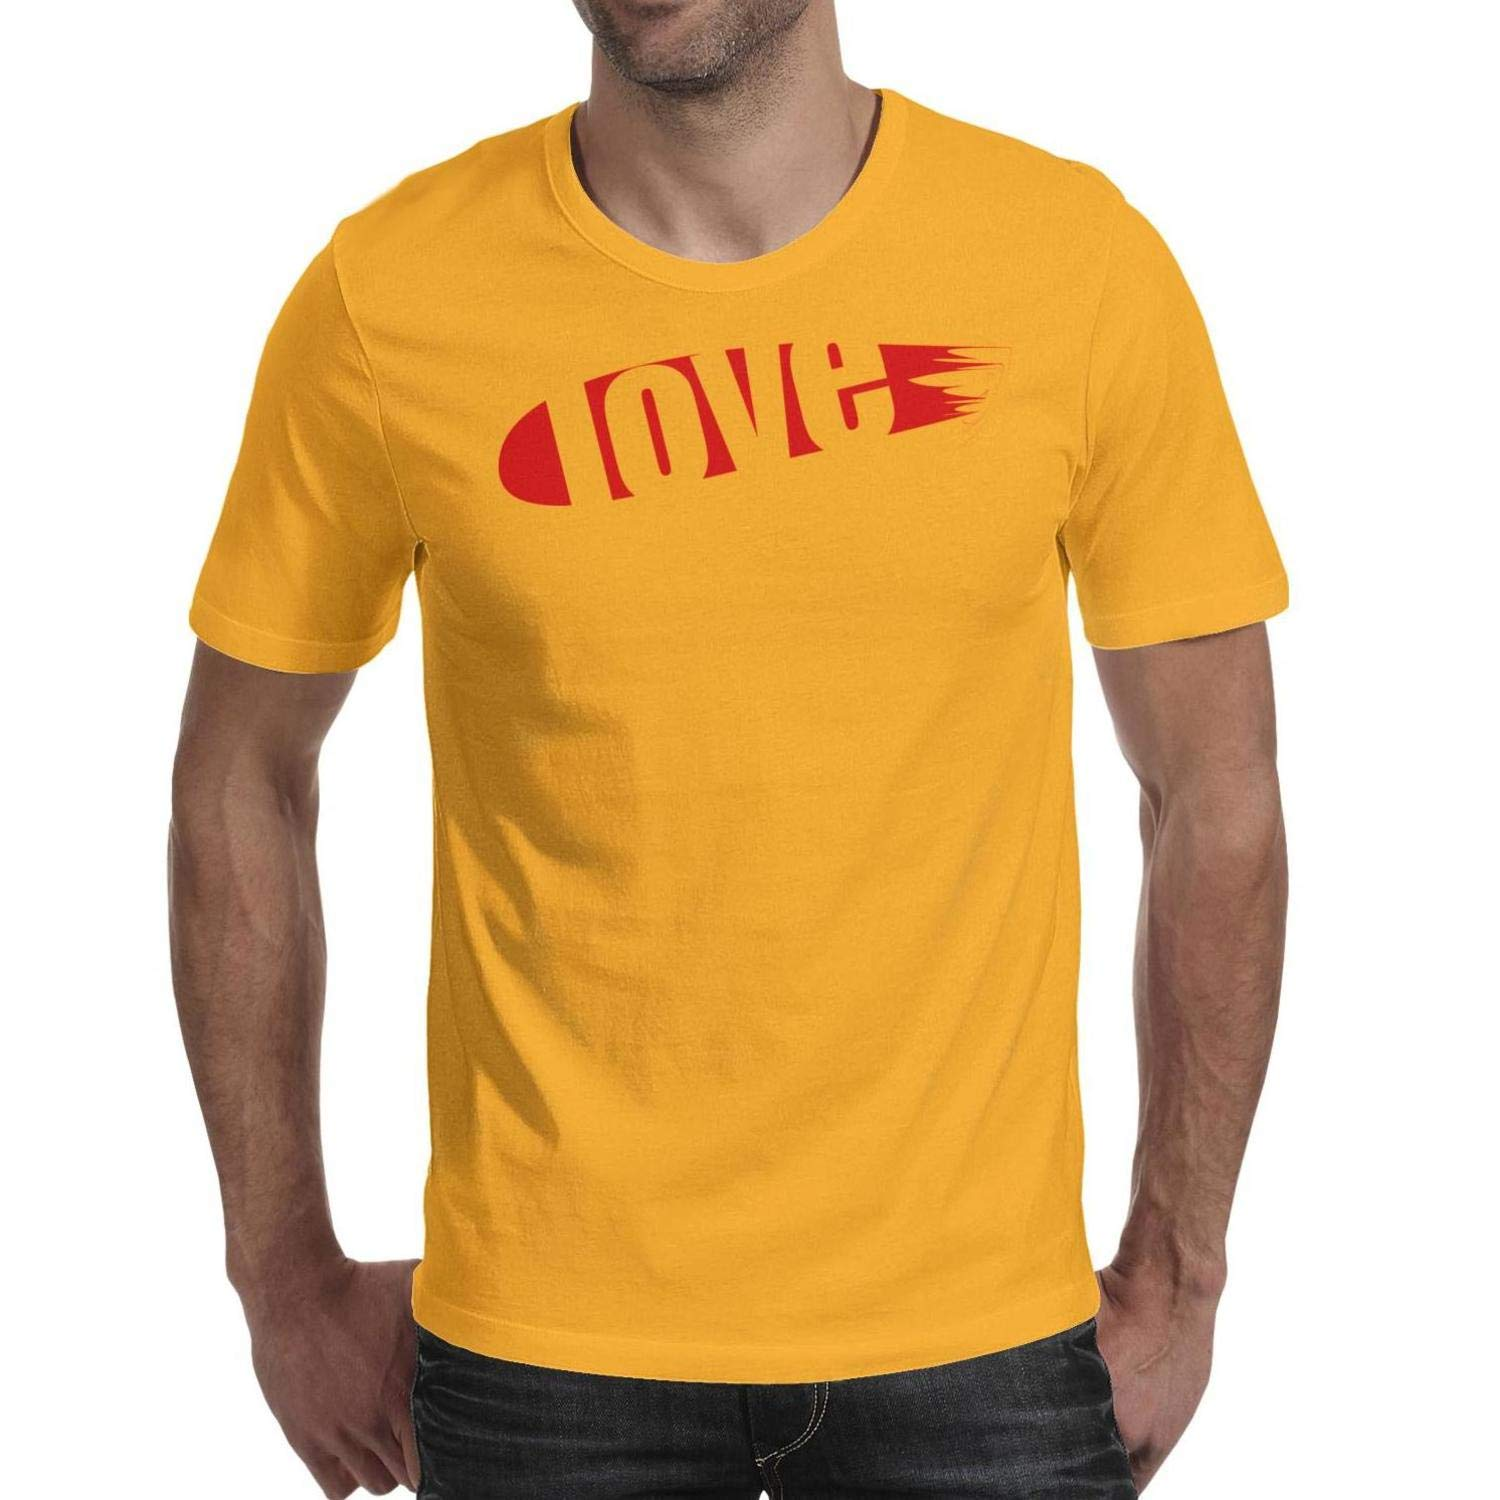 Blend Love Love Mens Tops Shirt Tee Cotton,Cable,Slim-Fit,Crew Neck,Solid,Graphic,Novelty} Round Neck